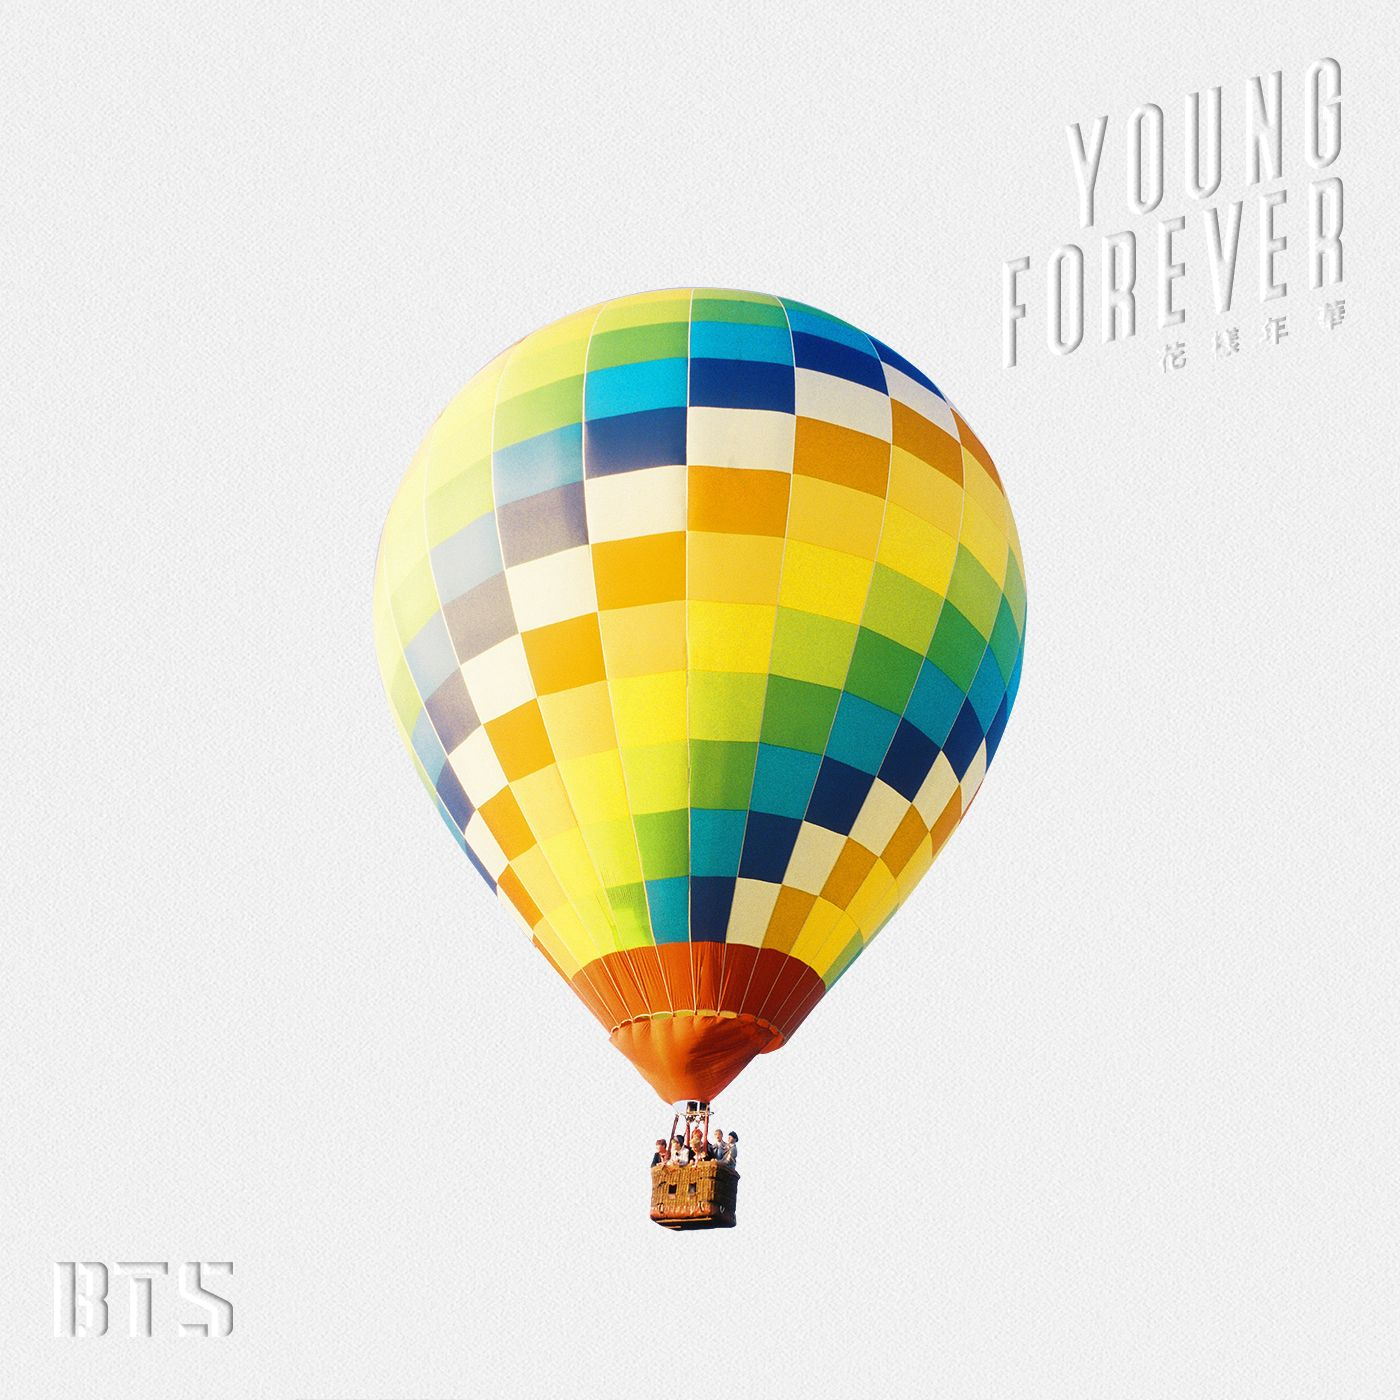 BTS Young Forever cover.png